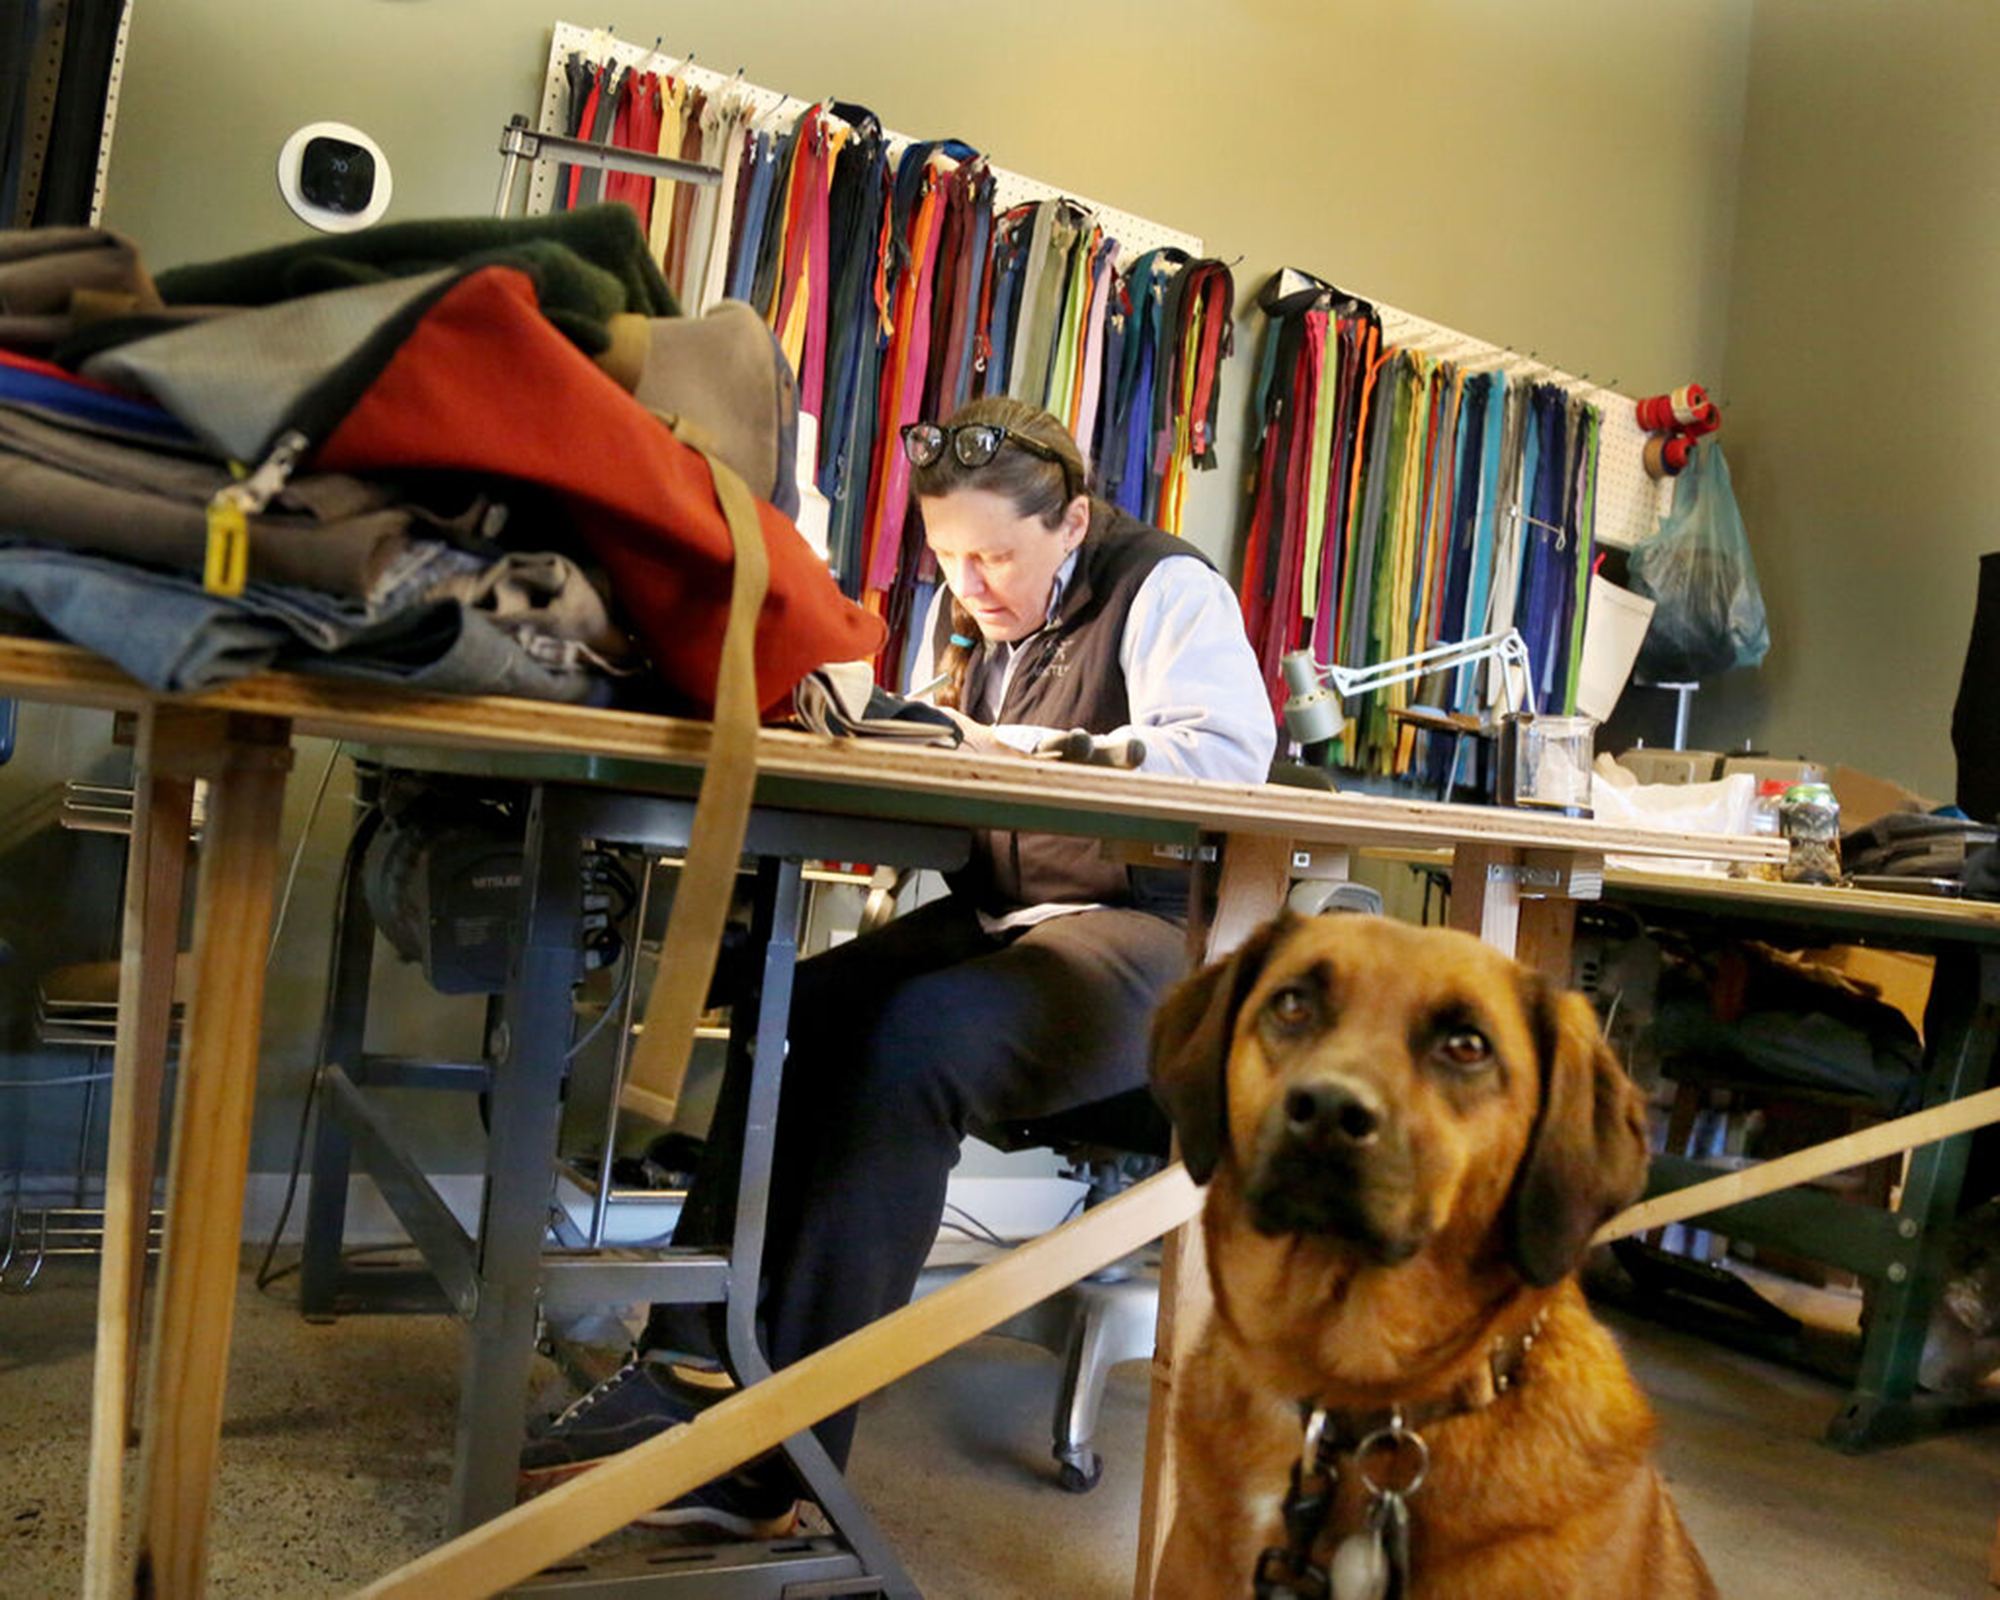 Repair Lair owner Nancy Ford works on replacing a zipper on a pair of bike pants at her Minneapolis consignment shop specializing in outdoor clothing, accessories and repair.